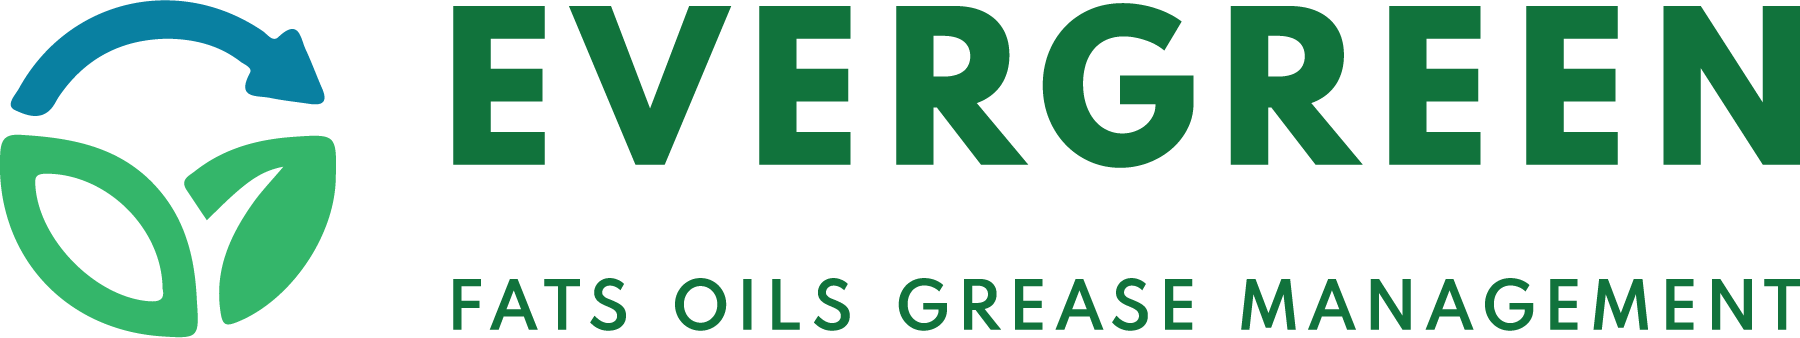 Evergreen - National Fats Oils & Grease FOG Management Service